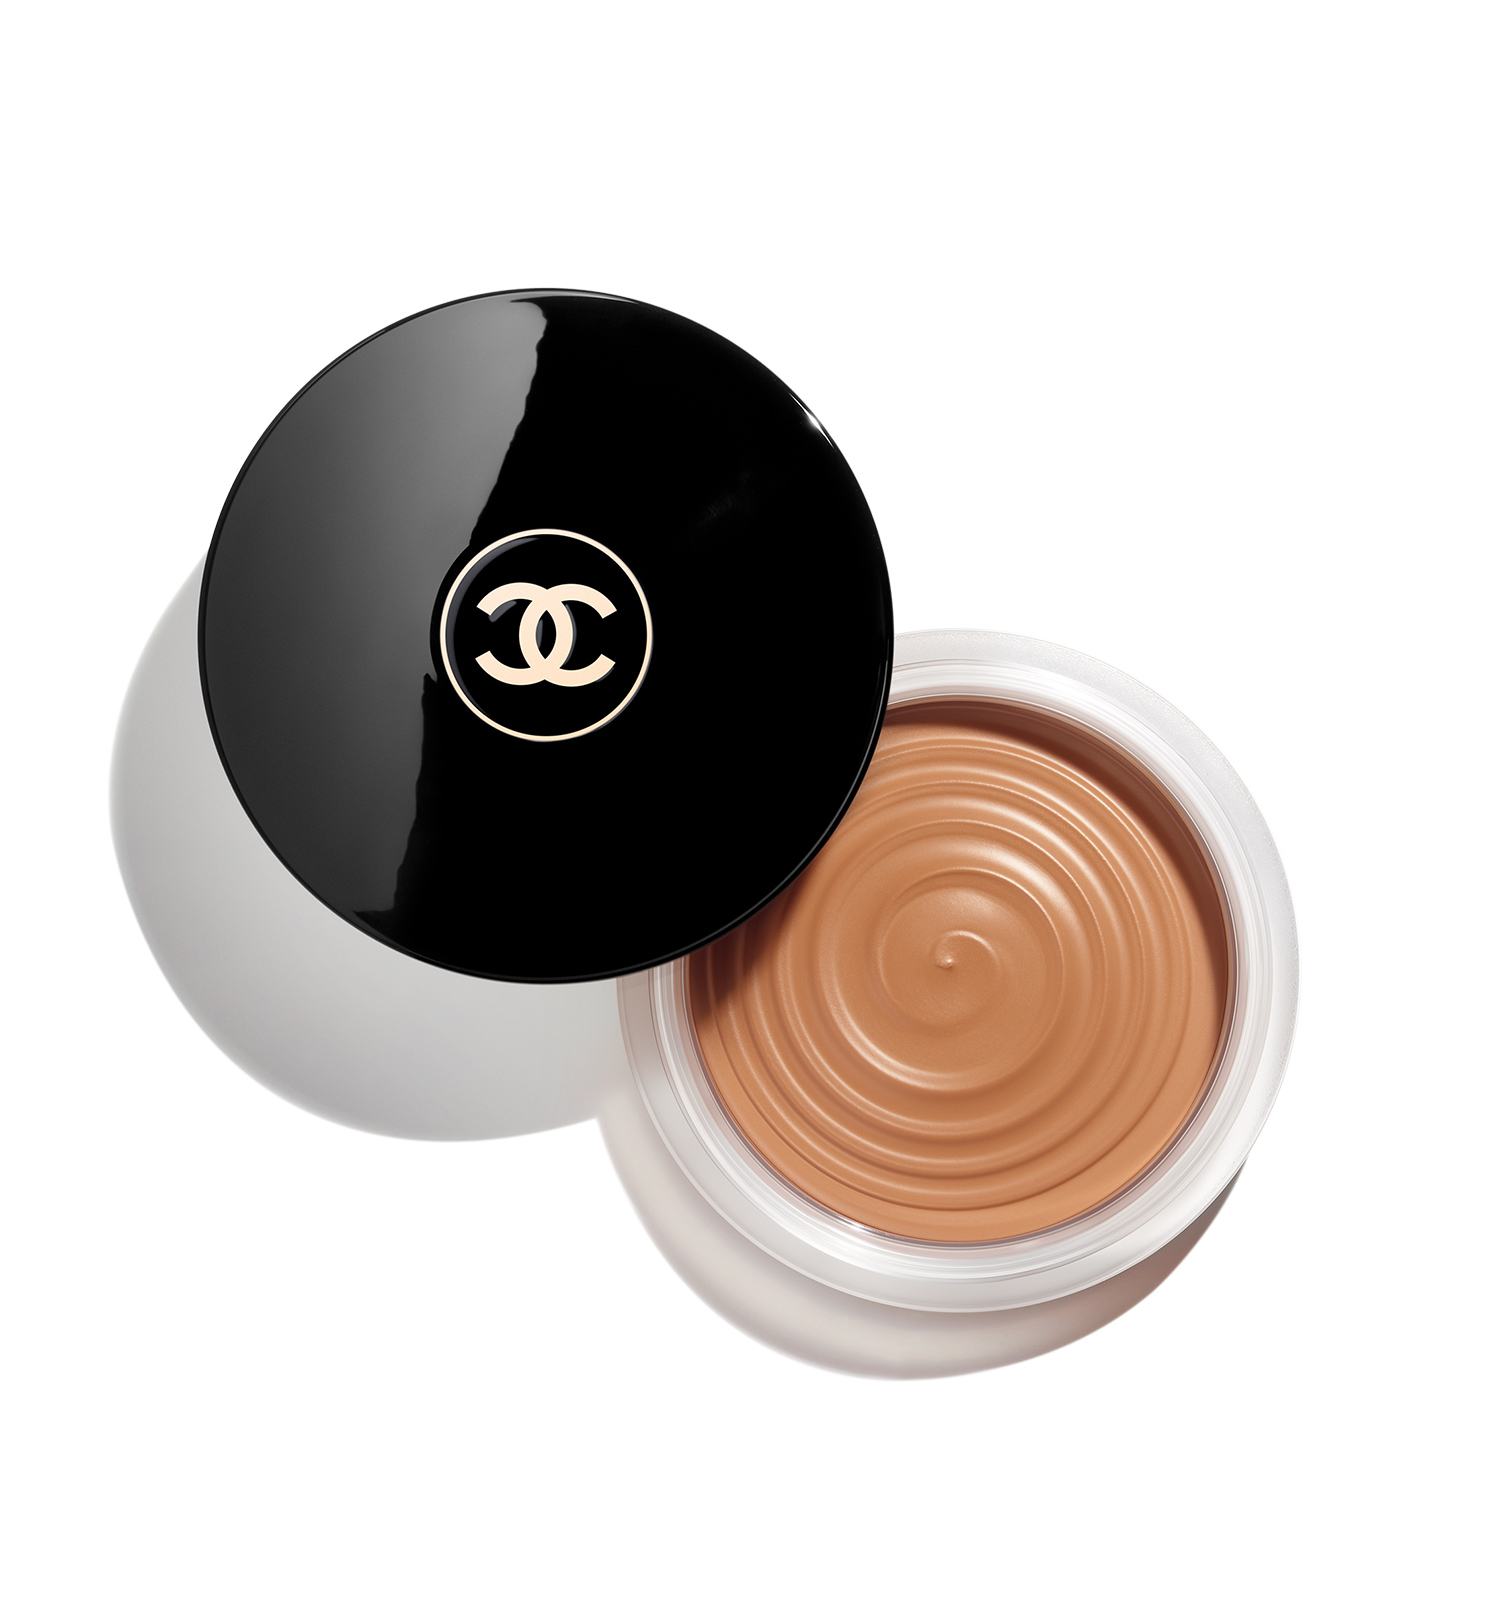 Make Up Effetto Abbronzatura - CHANEL